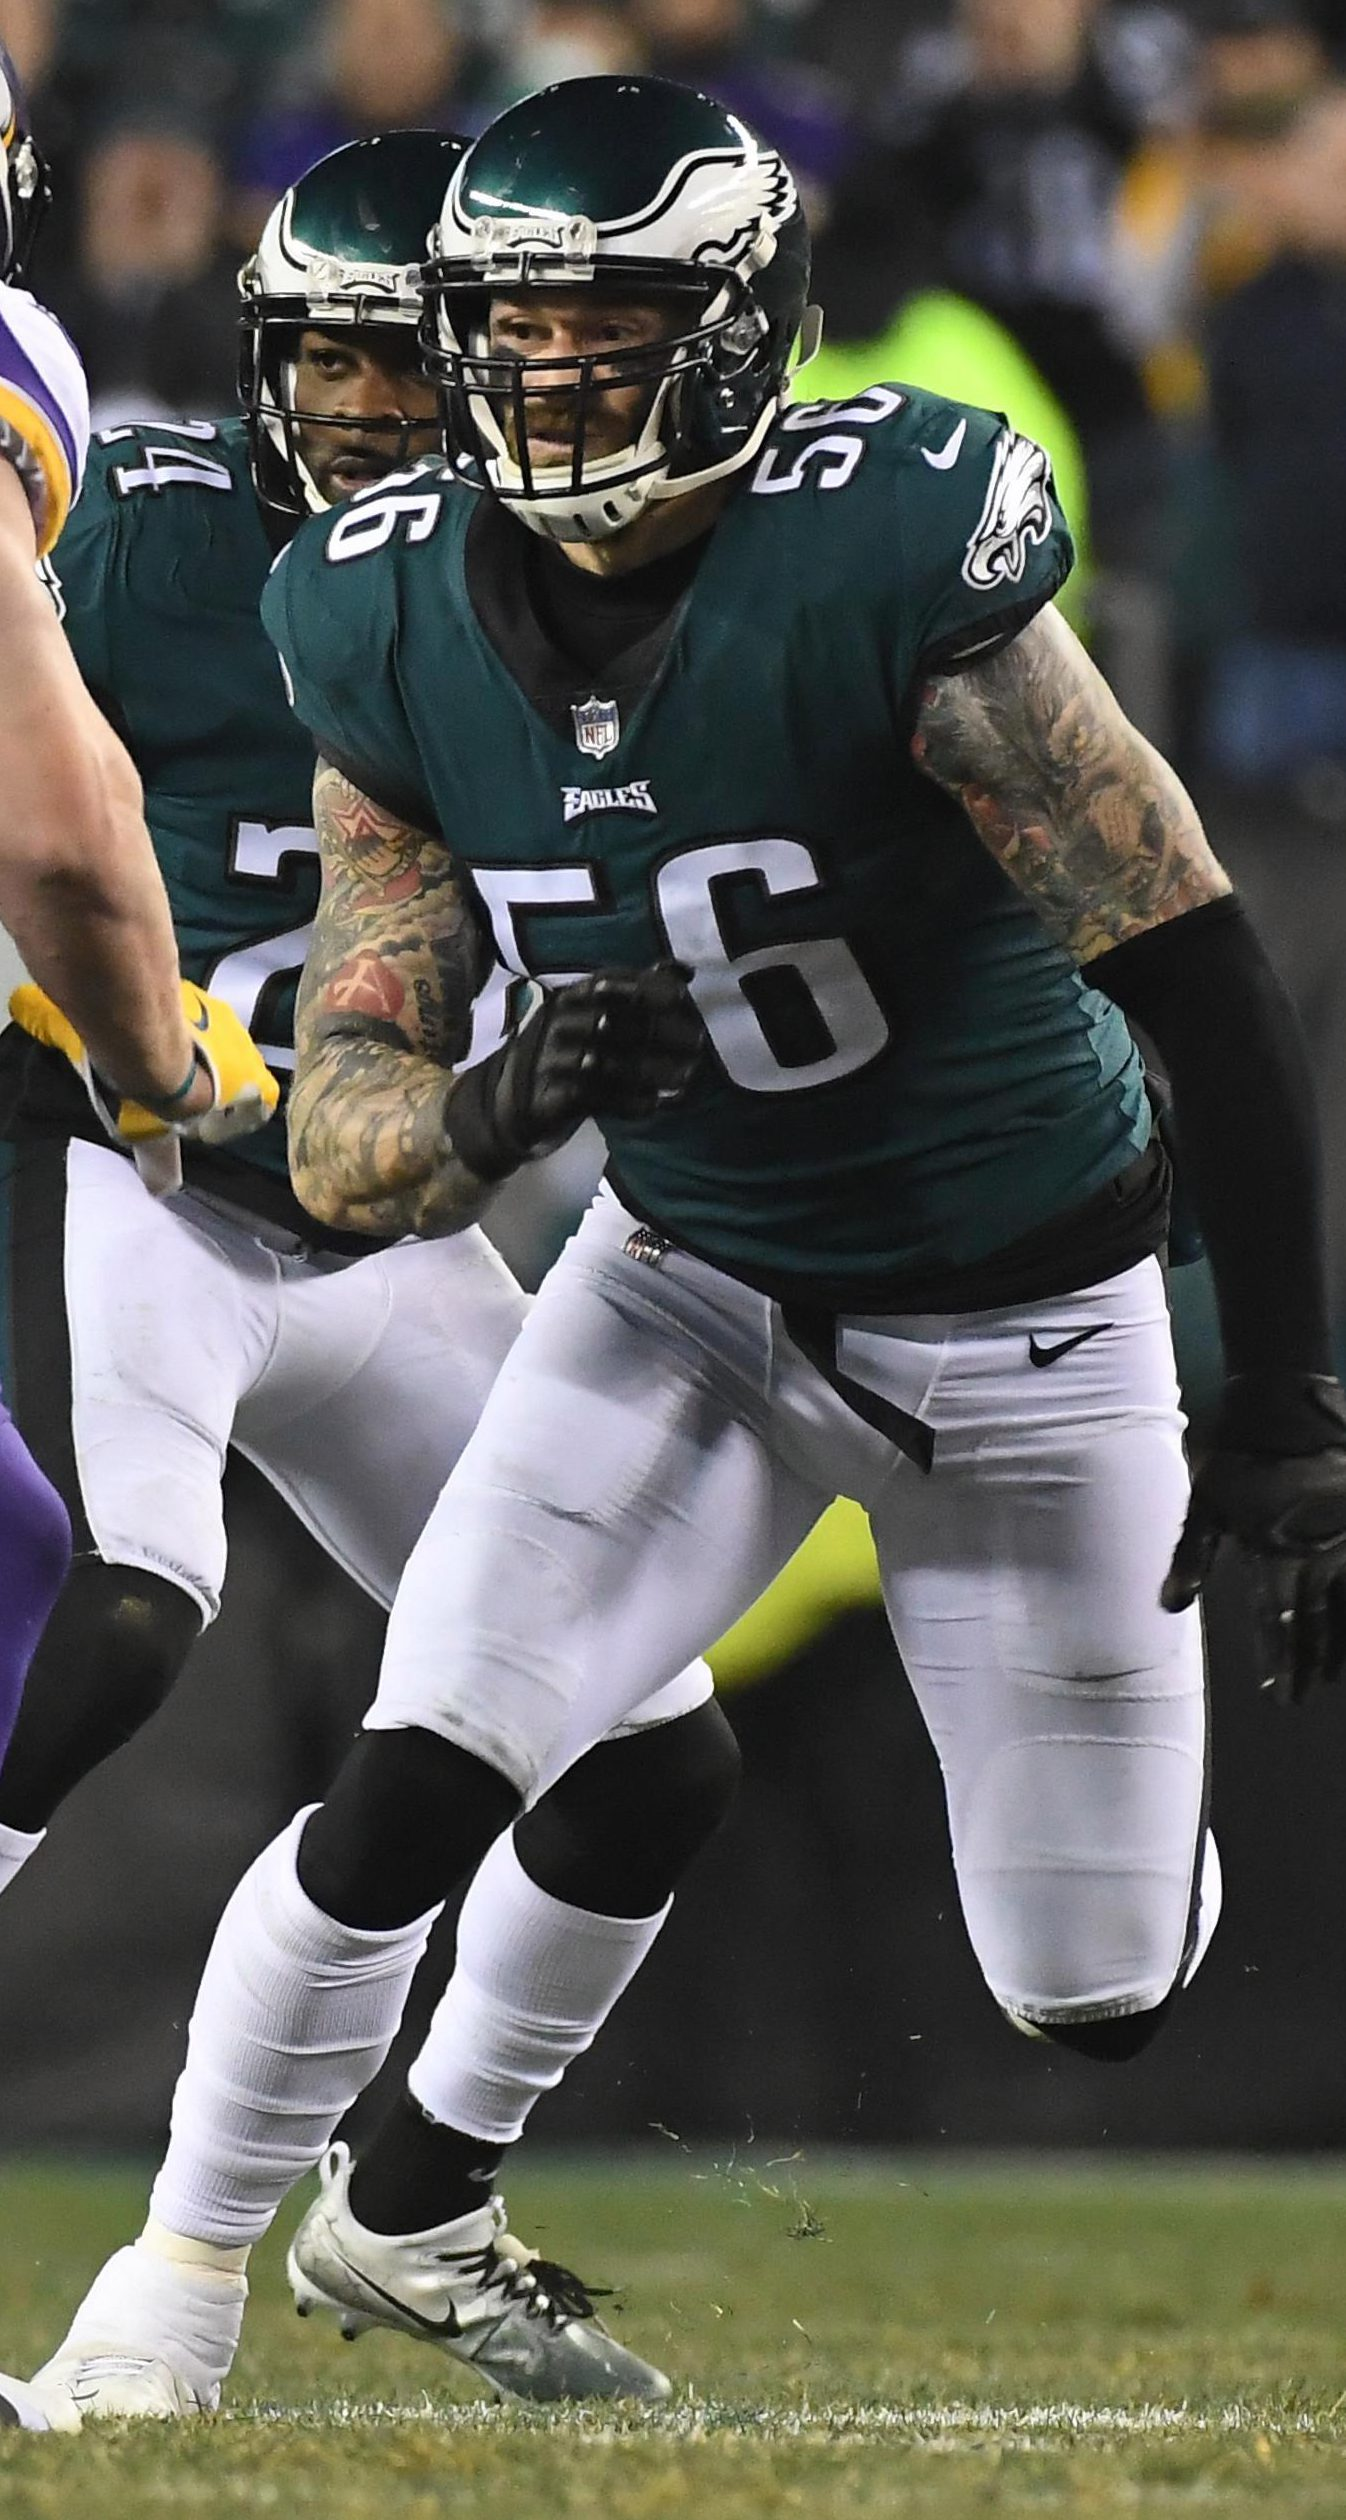 Eagles ace Chris Long is now outspoken on social issues and also helps charities